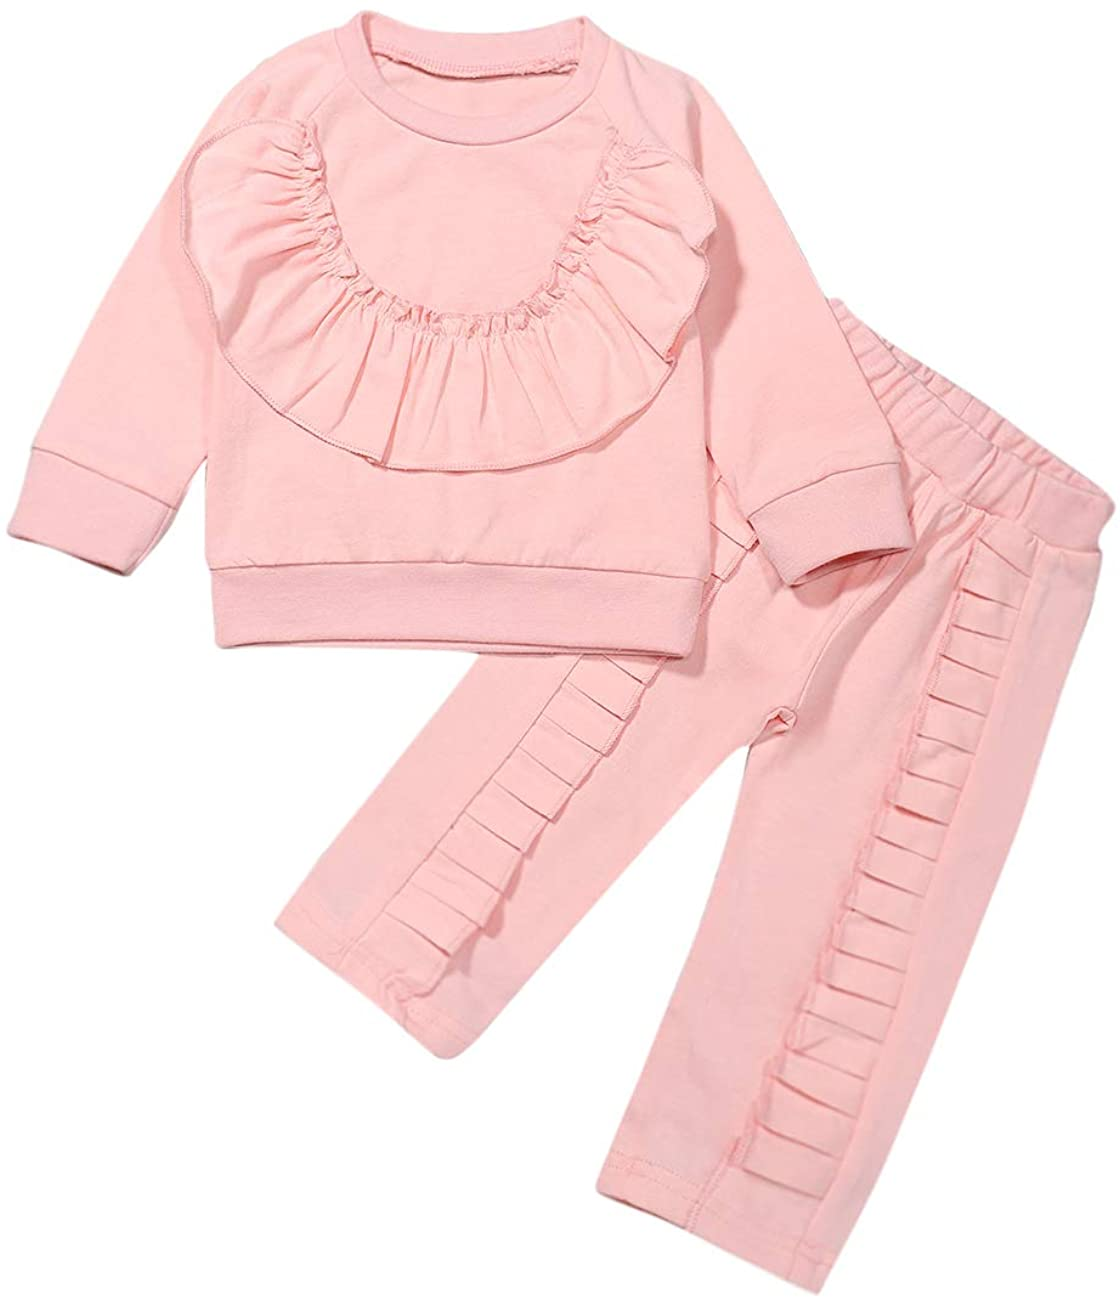 Toddler Baby Girl Clothes Long Sleeve Cute Ruffle Sweatshirt Pullover Top and Pants Outfit Set